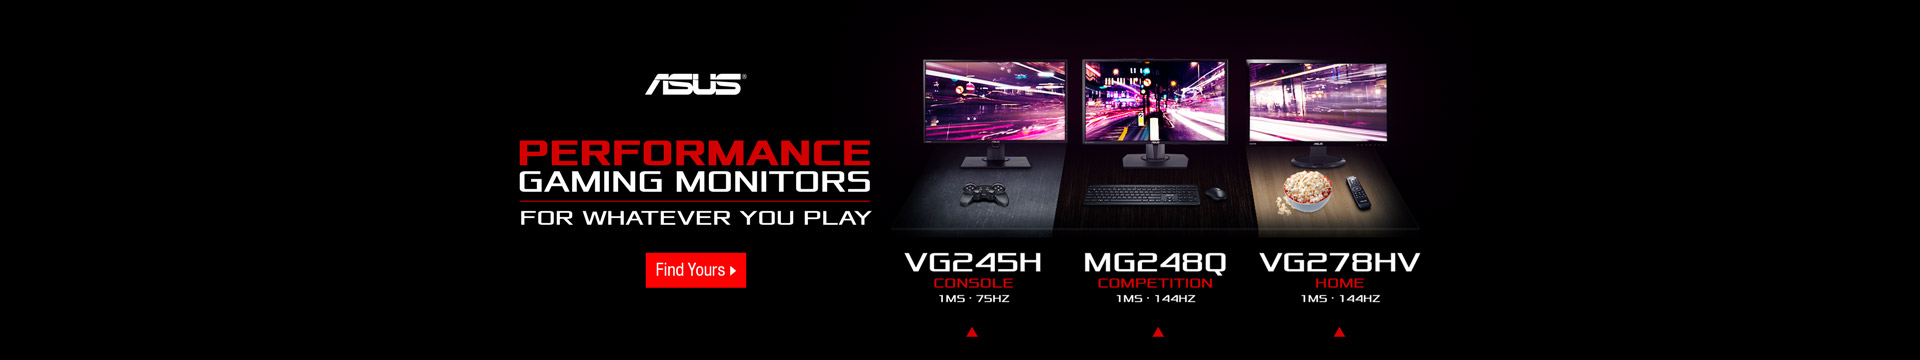 Performance gaming monitors